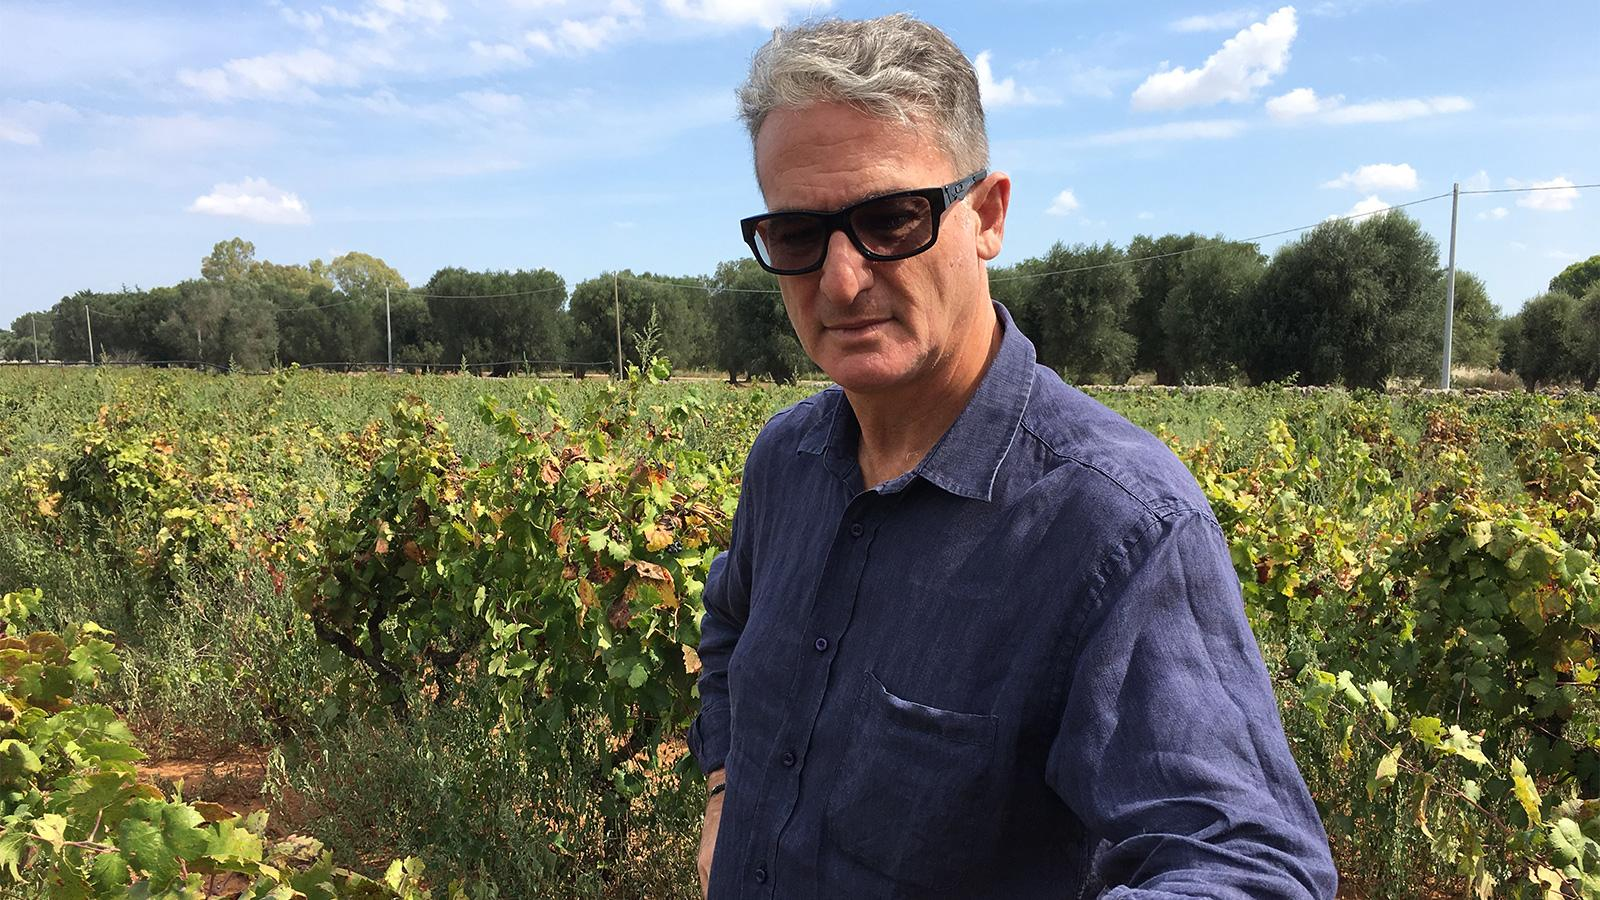 Gianfranco Fino tends his jungle of Primitivo vines in Puglia.